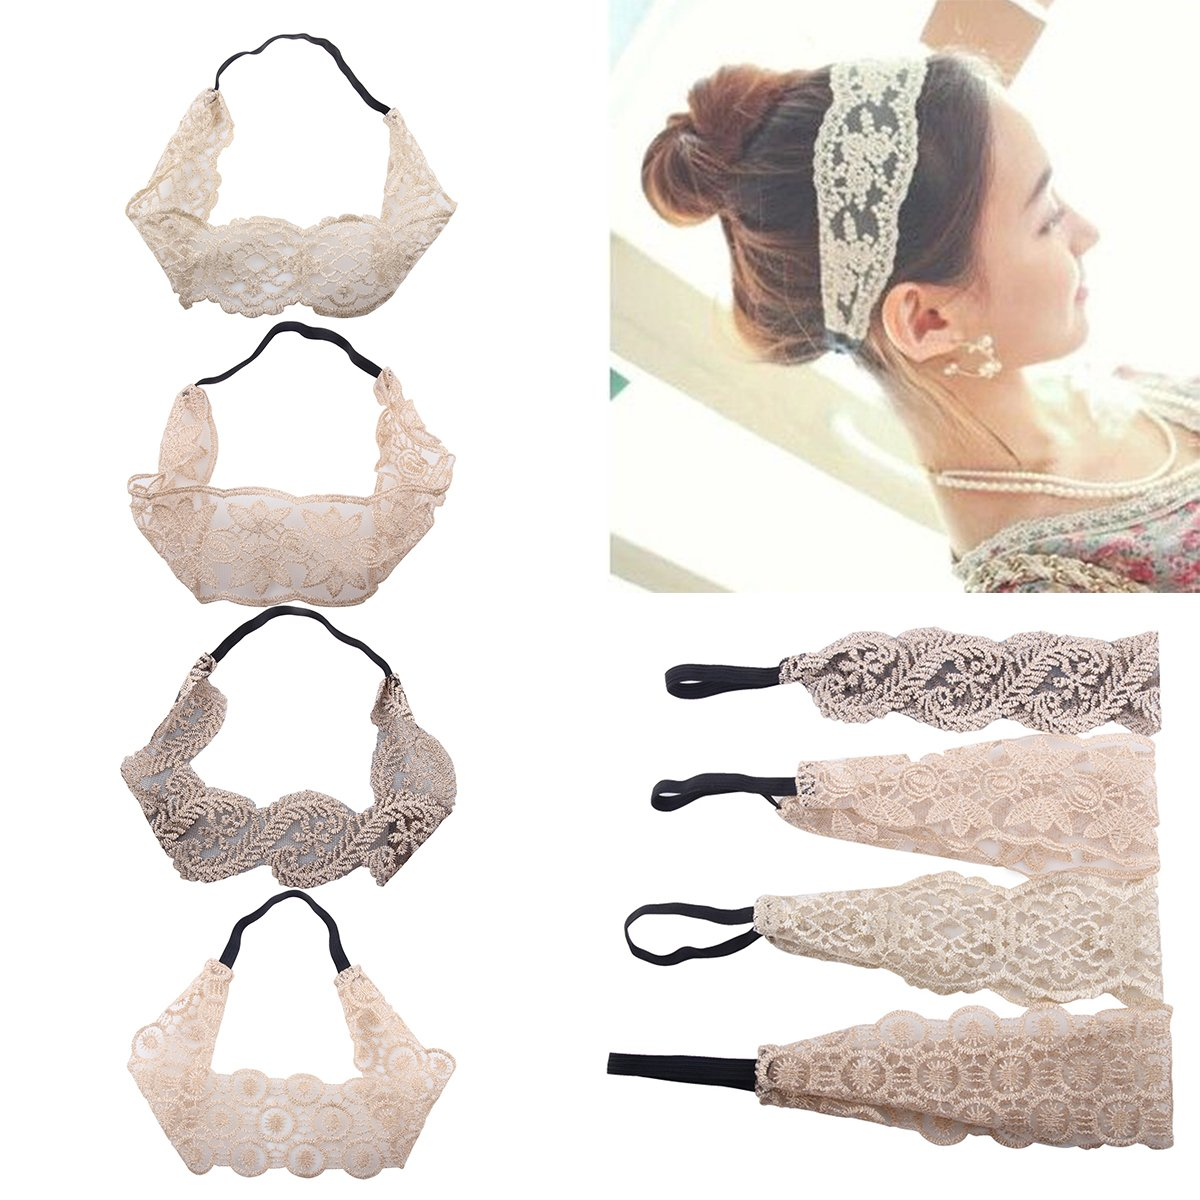 Frcolor Lace Headbands, Elegant Retro Stretch Headband Hair Band Wide Headwrap for Women Girls, 7Pcs